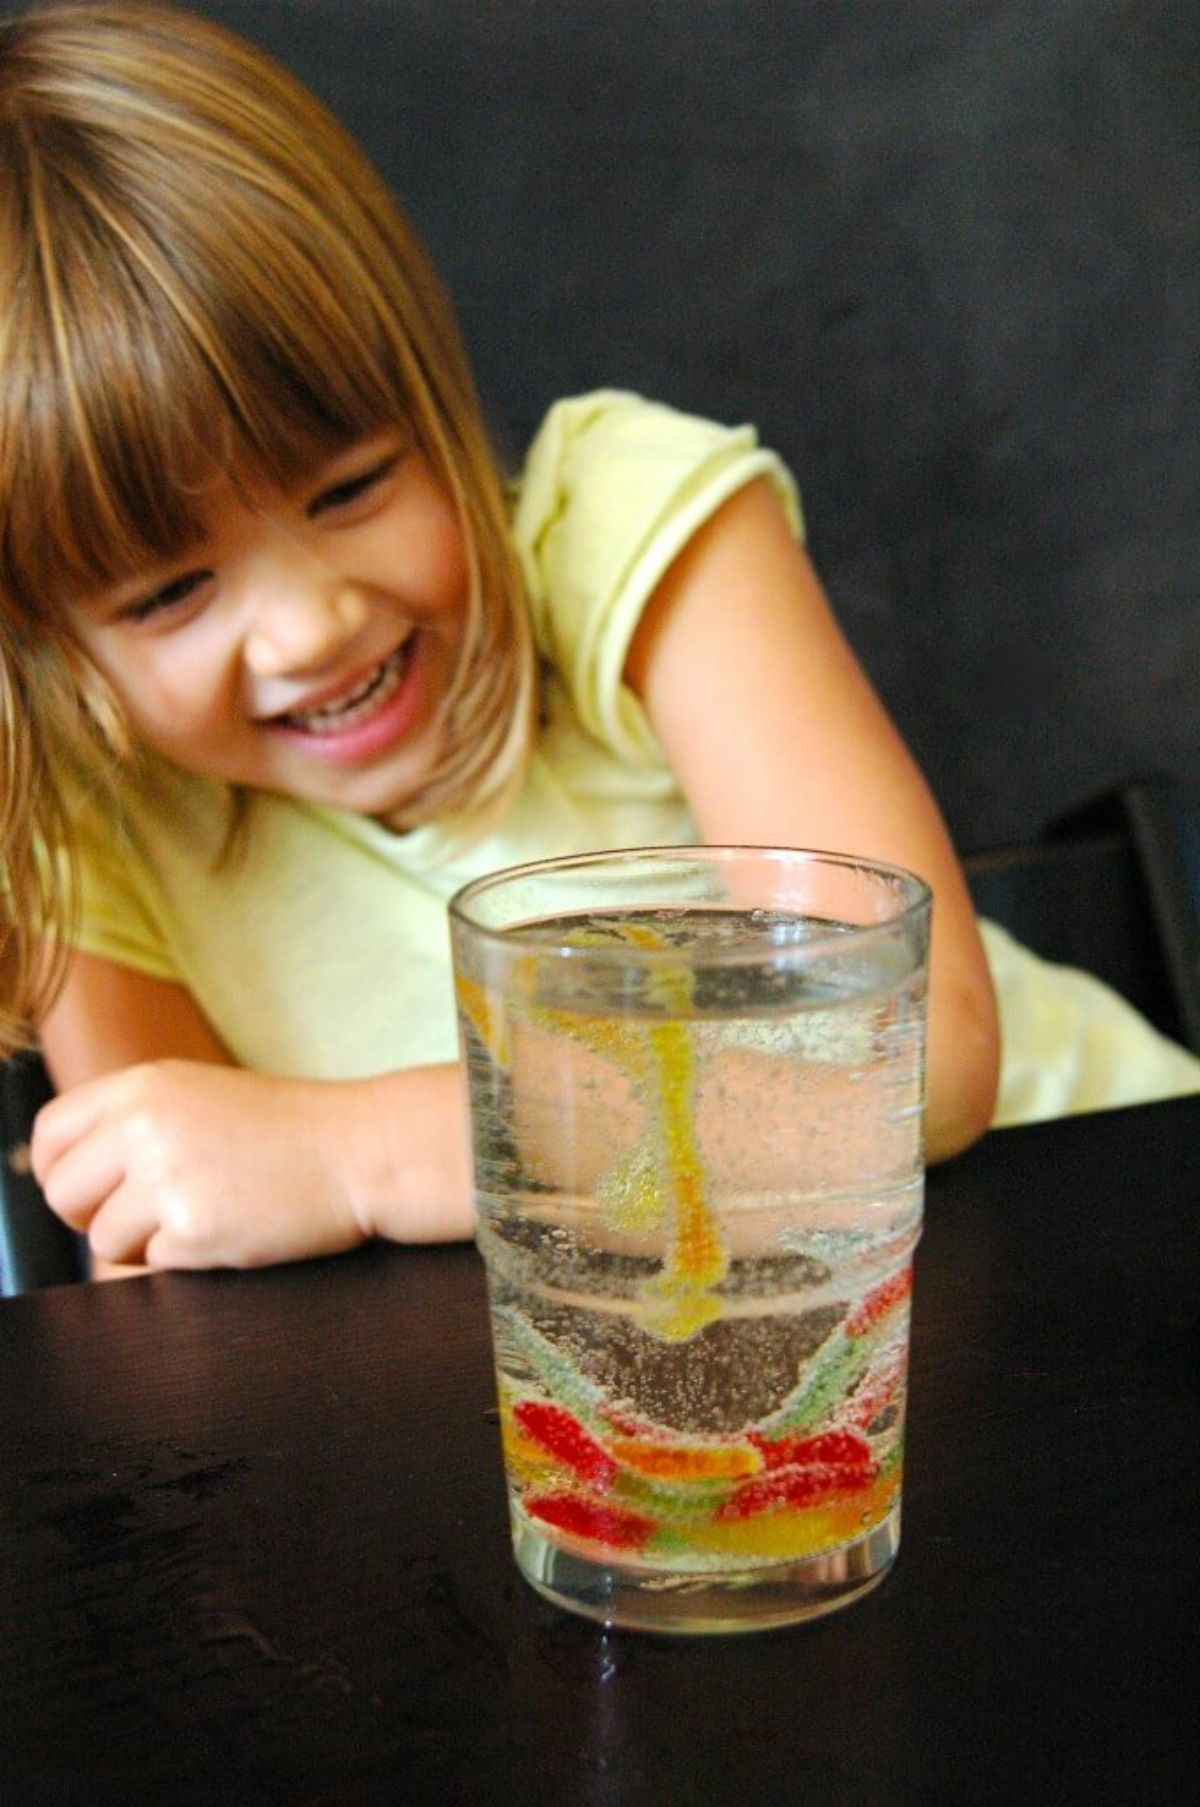 a girl in a yellow shirt sits at a table. in front of her is a glass fille dwith fizzing liquid and some jelly snake sweets